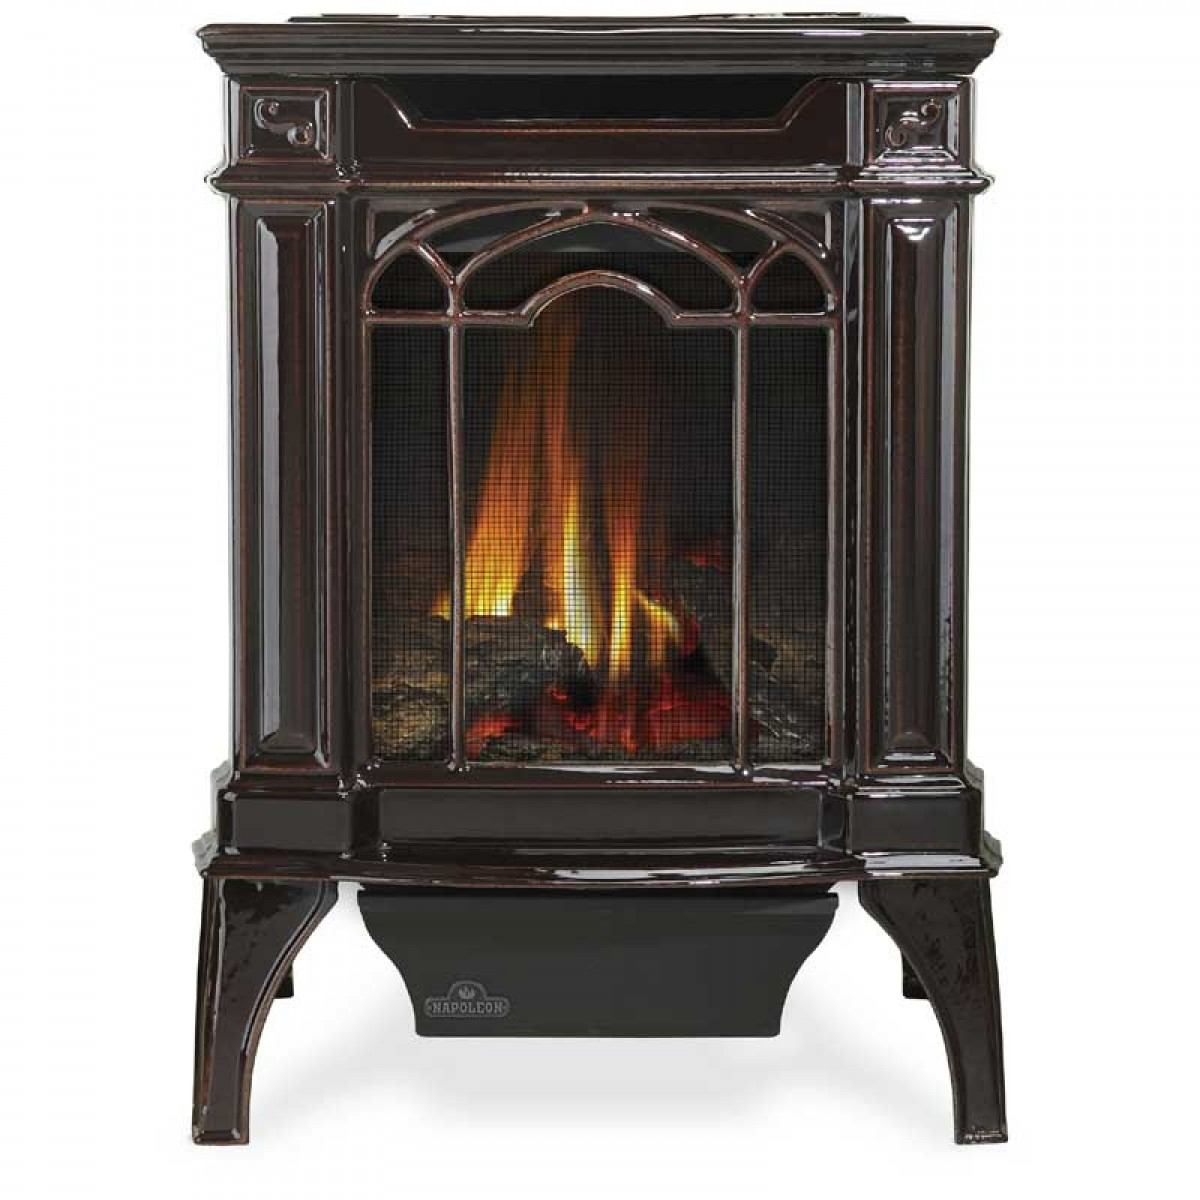 Napoleon Gds20n Arlington Cast Iron Natural Gas Stove Painted Black At Ibuyfireplaces